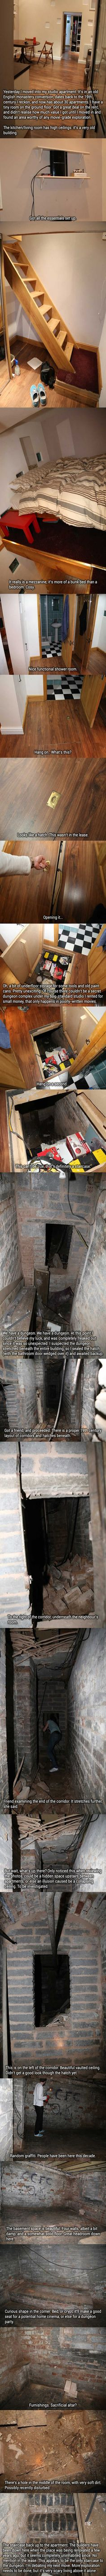 So this guy found a dungeon in his apartment. A real, legit dungeon.